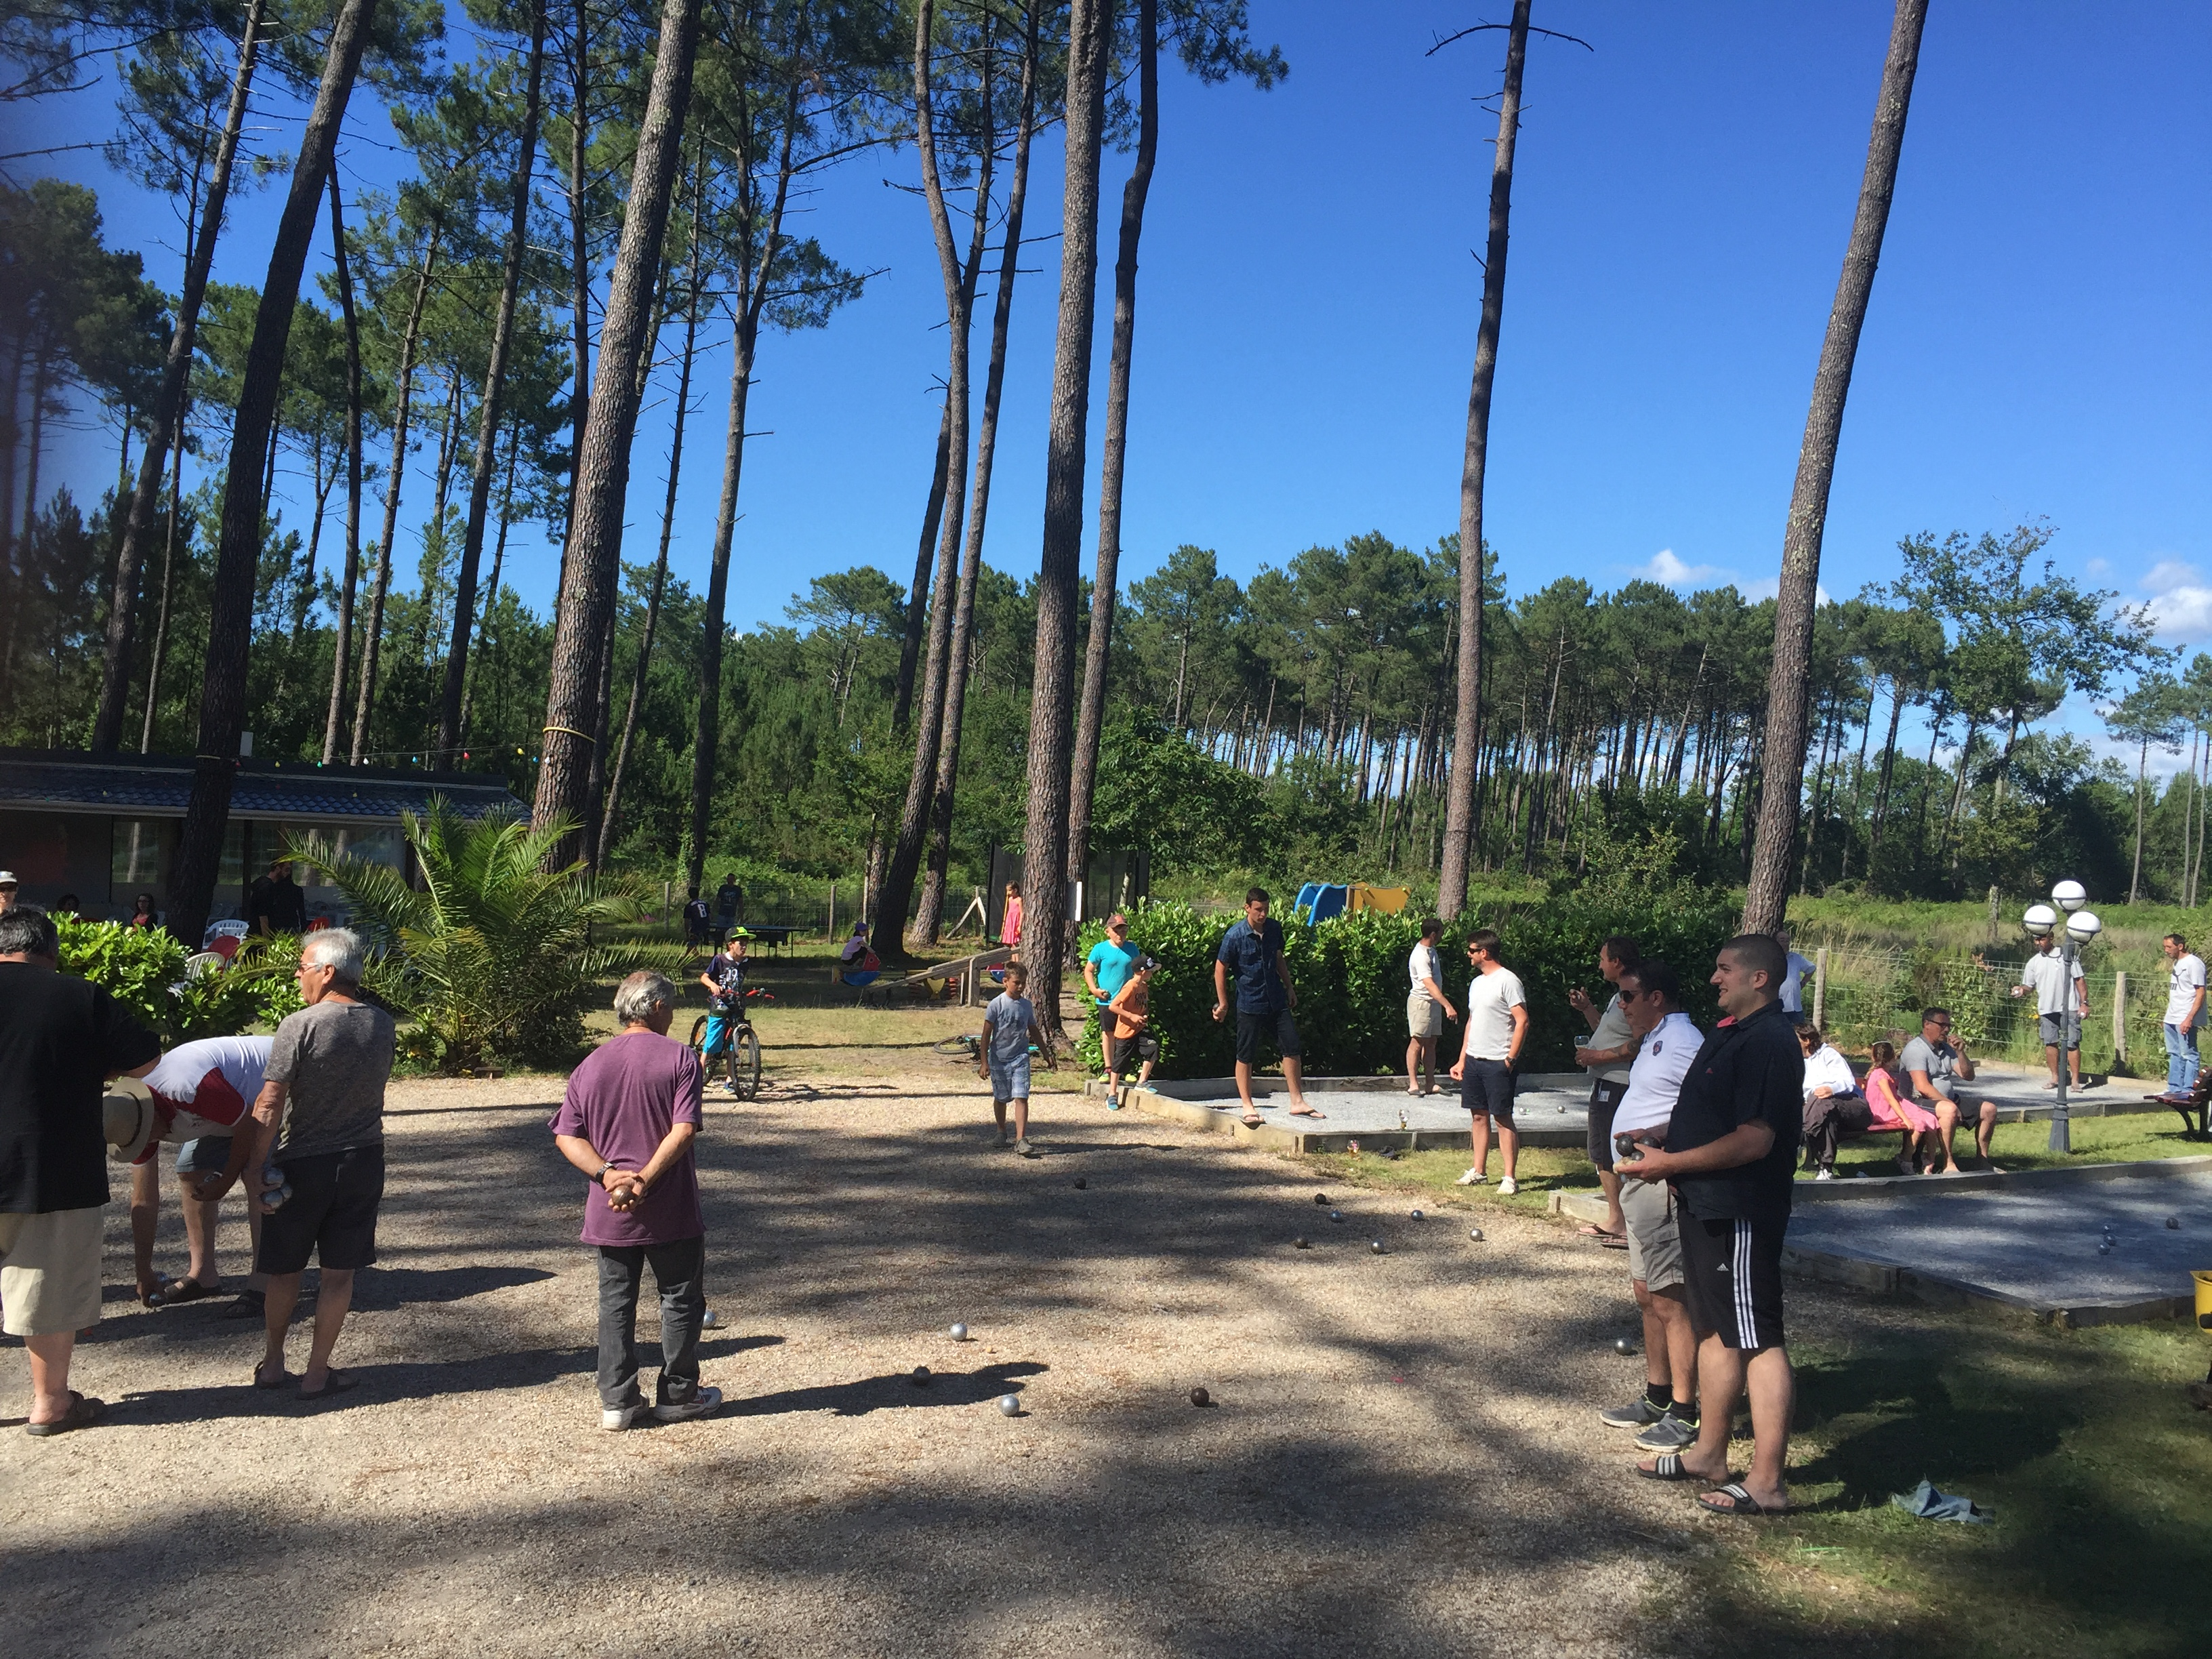 France - Atlantique Sud - Gastes - Camping Les Echasses